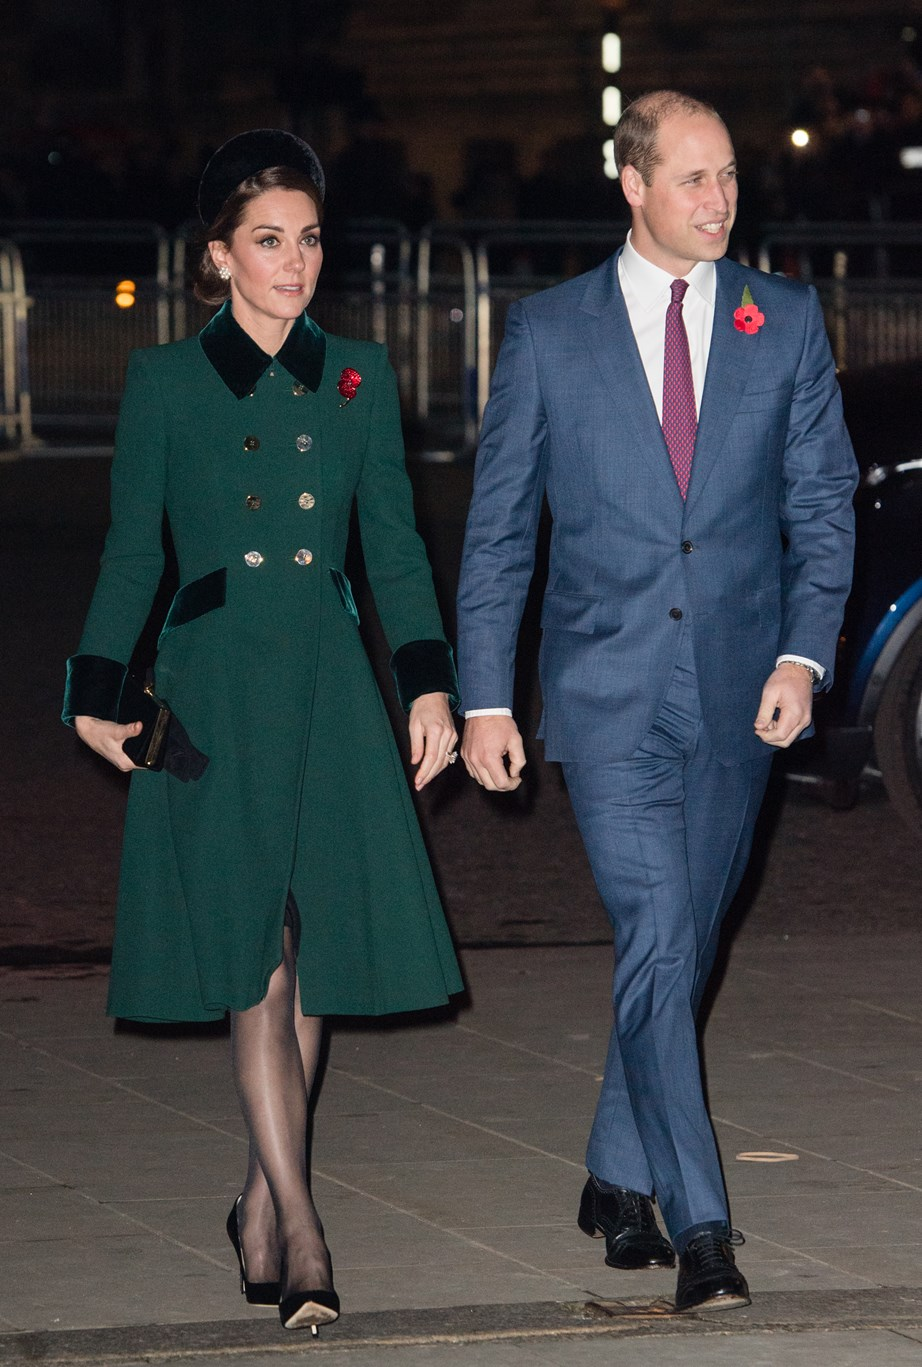 Kate's moss green coat looking striking on the Duchess.